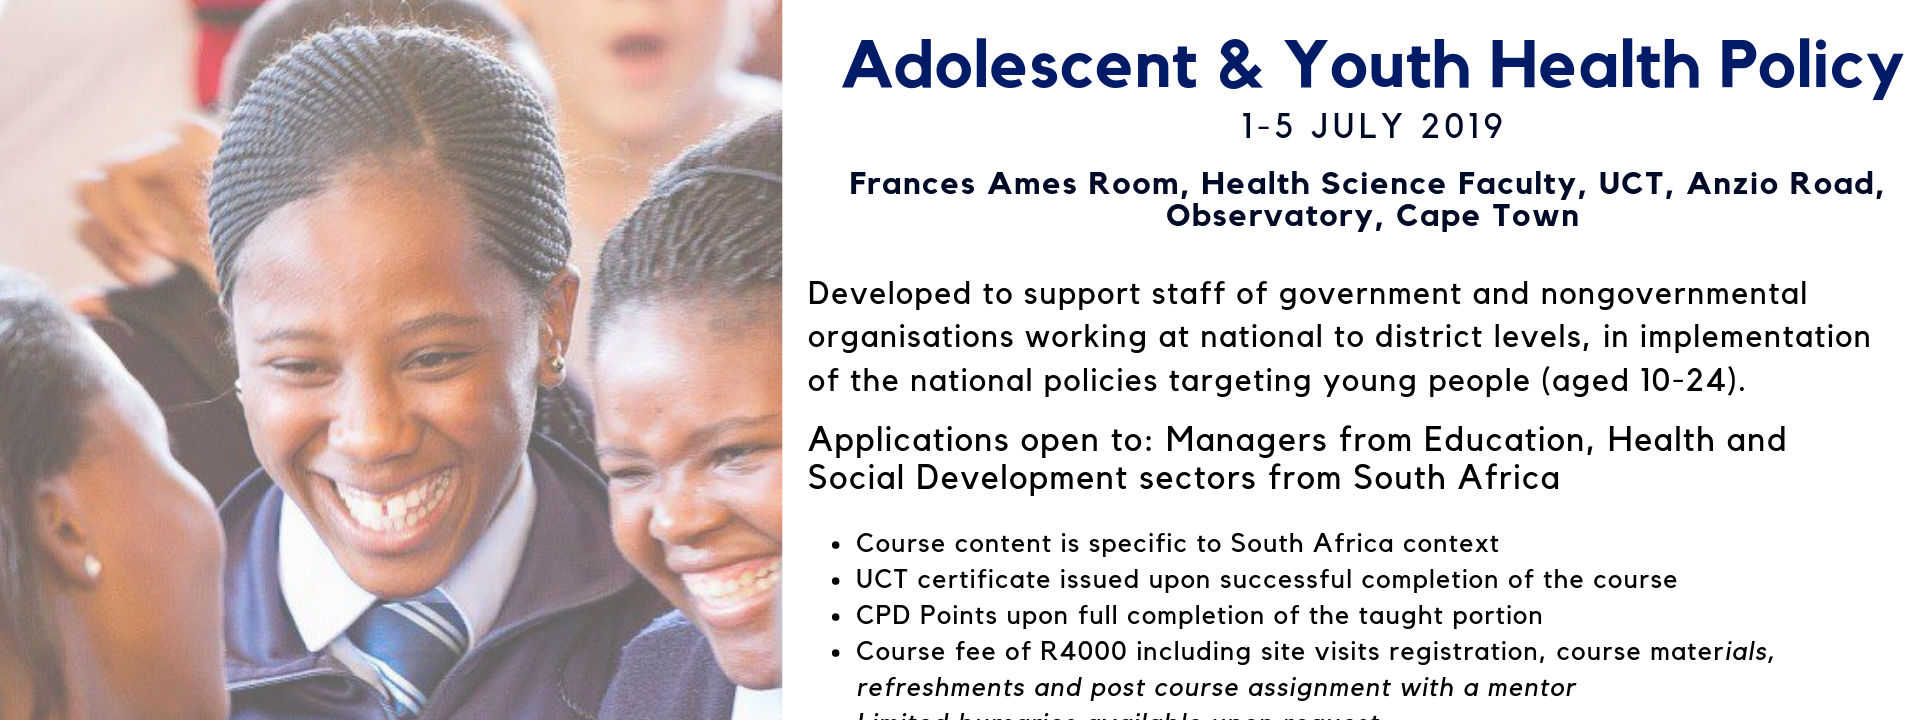 Adolescent & Youth Health Policy Short Course | 1 to 5 July 2019